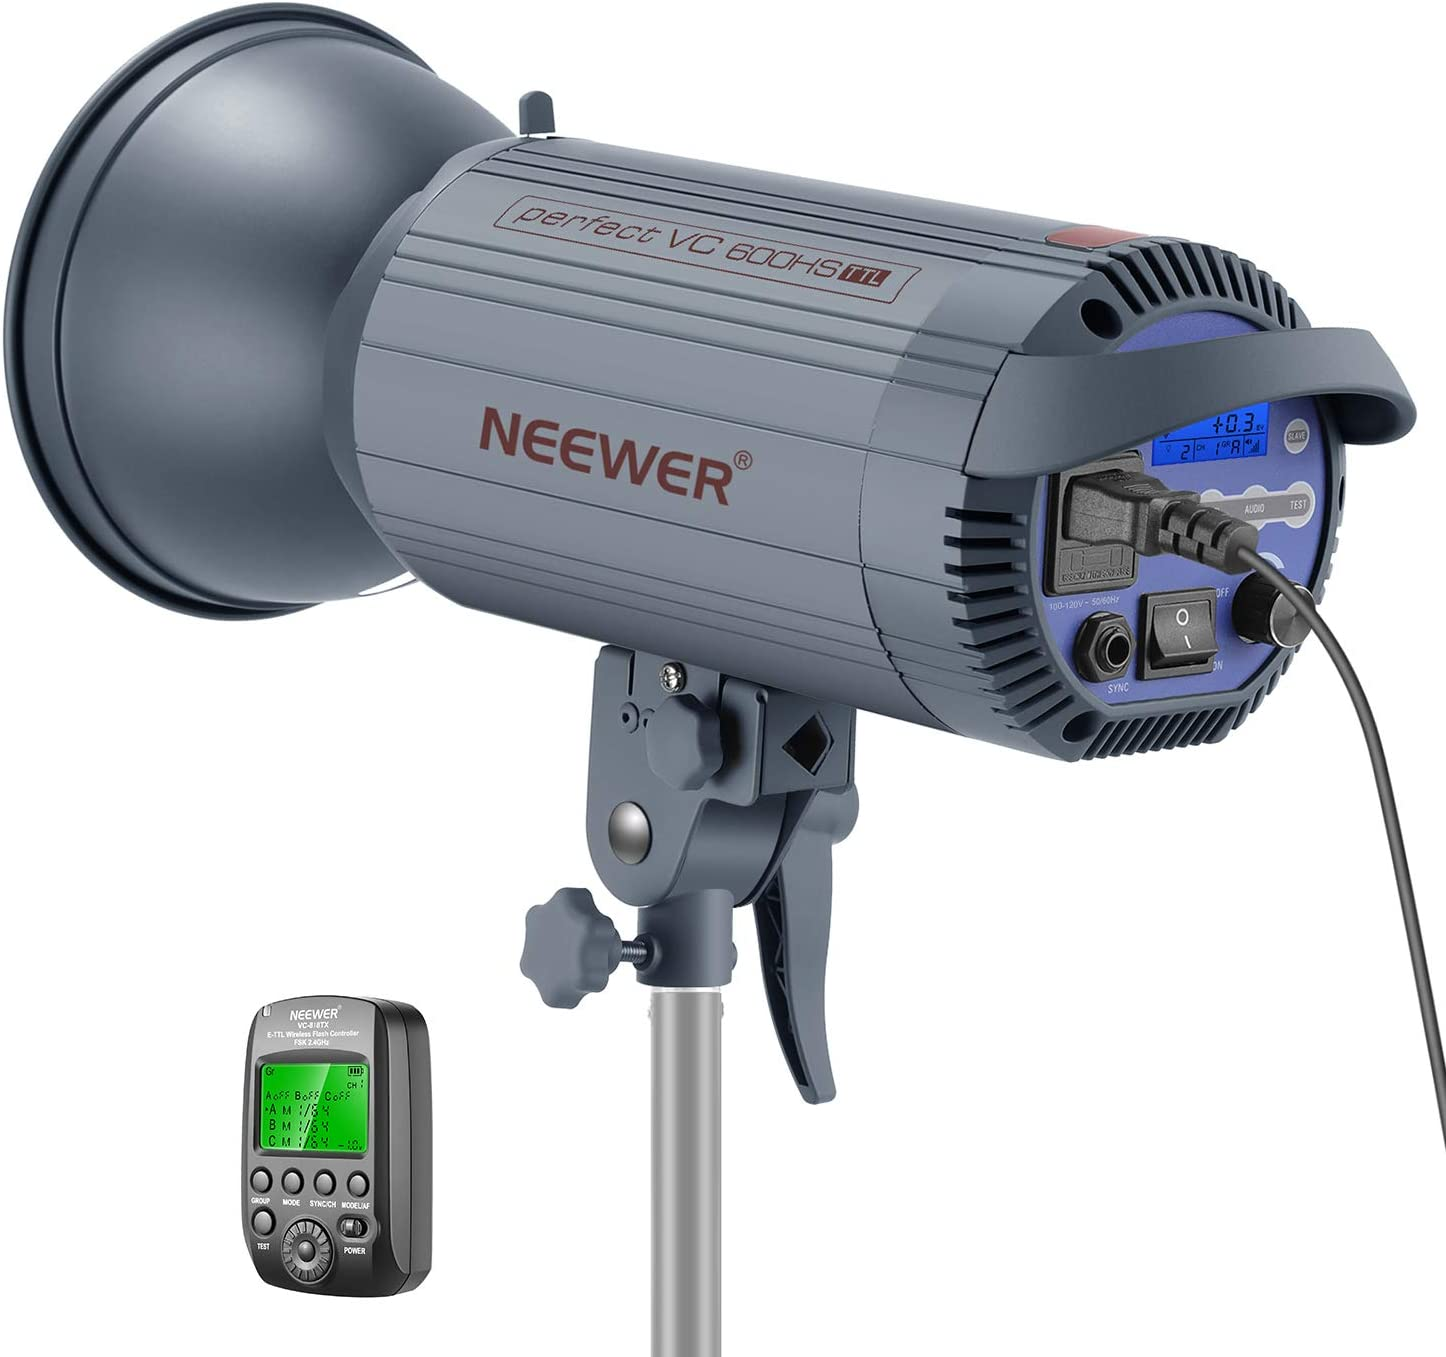 Bowens Mount for Studio Portrait Photography(VC 600HS) Neewer 600W TTL HSS 1//8000s GN86 Studio Strobe Flash Light Monolight with 2.4G Wireless Trigger for Sony Mirrorless Cameras,Recycle 0.6 Sec